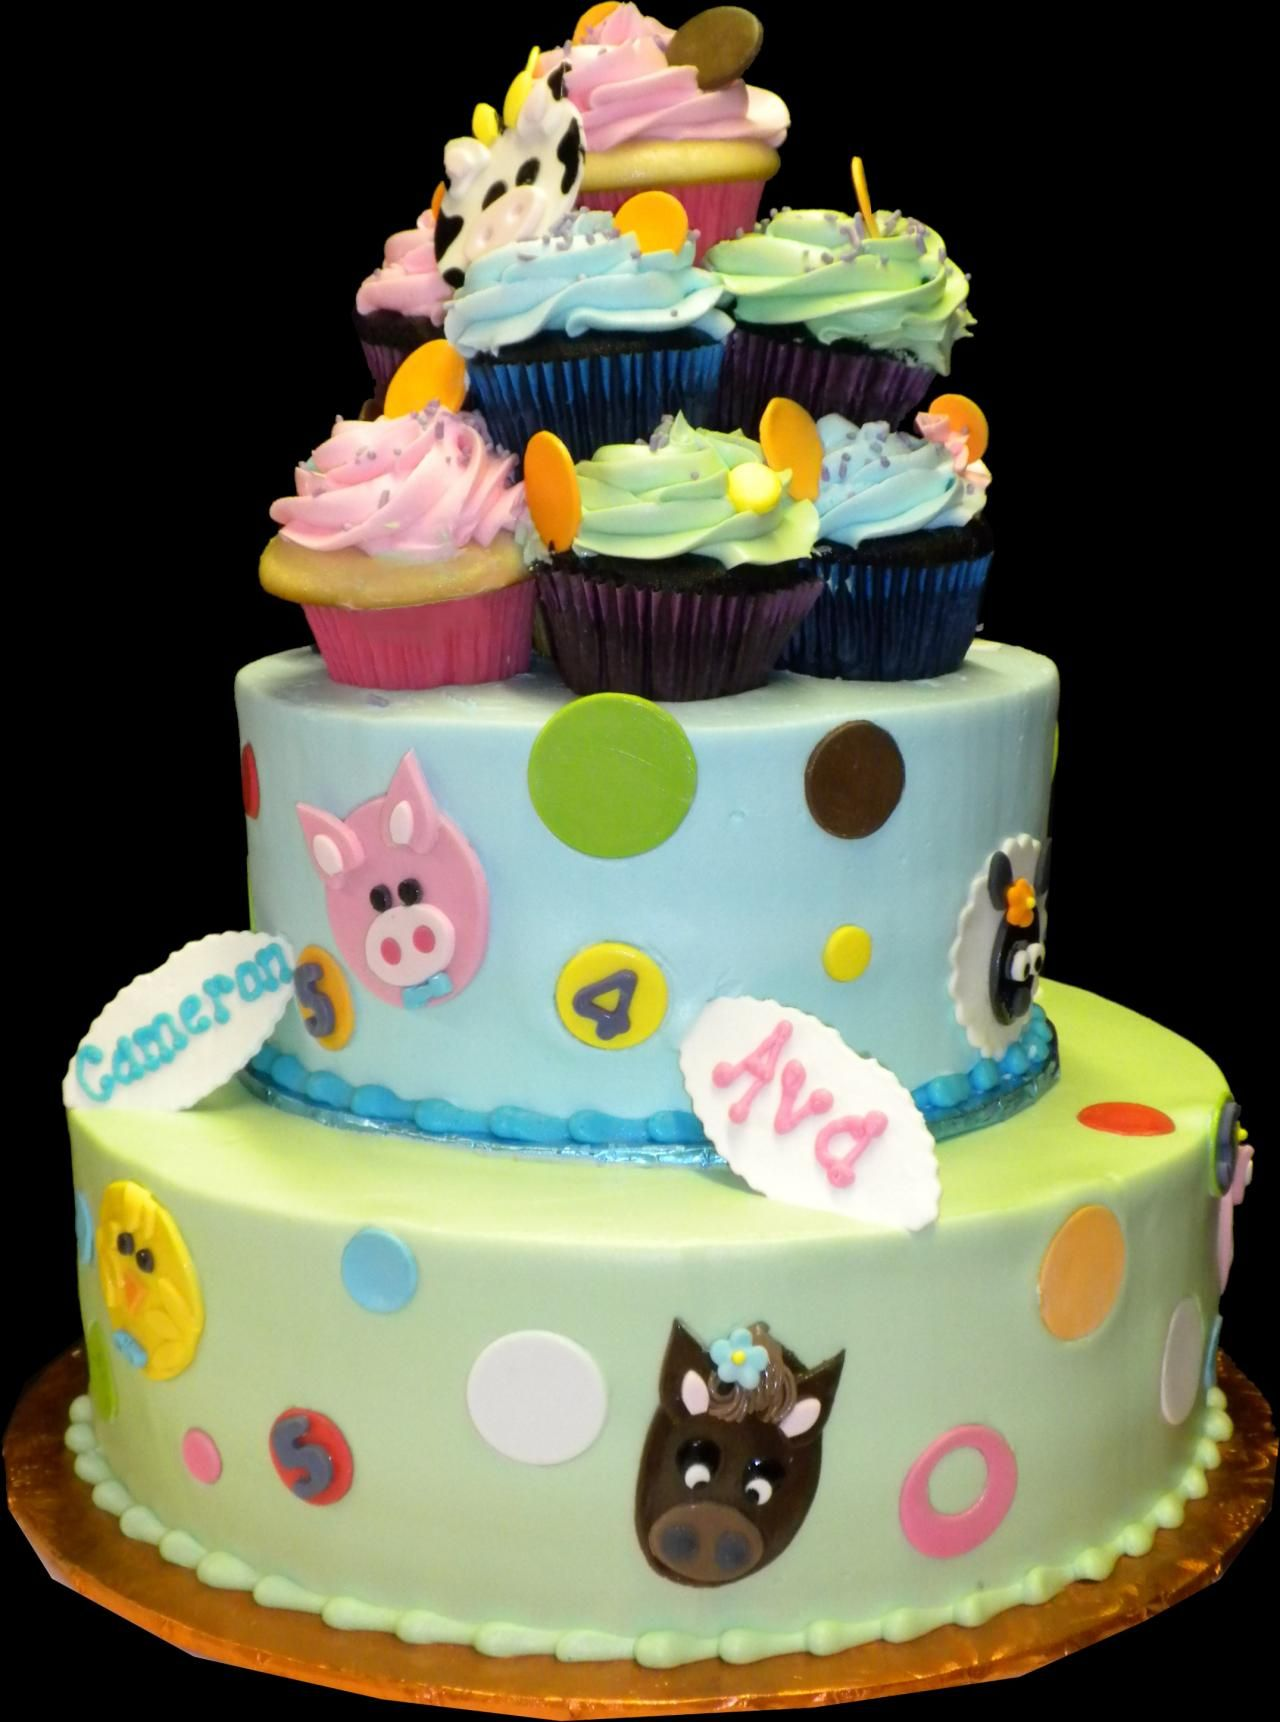 Cuddly Farm Birthday Cake Green And Blue Buttercream Iced